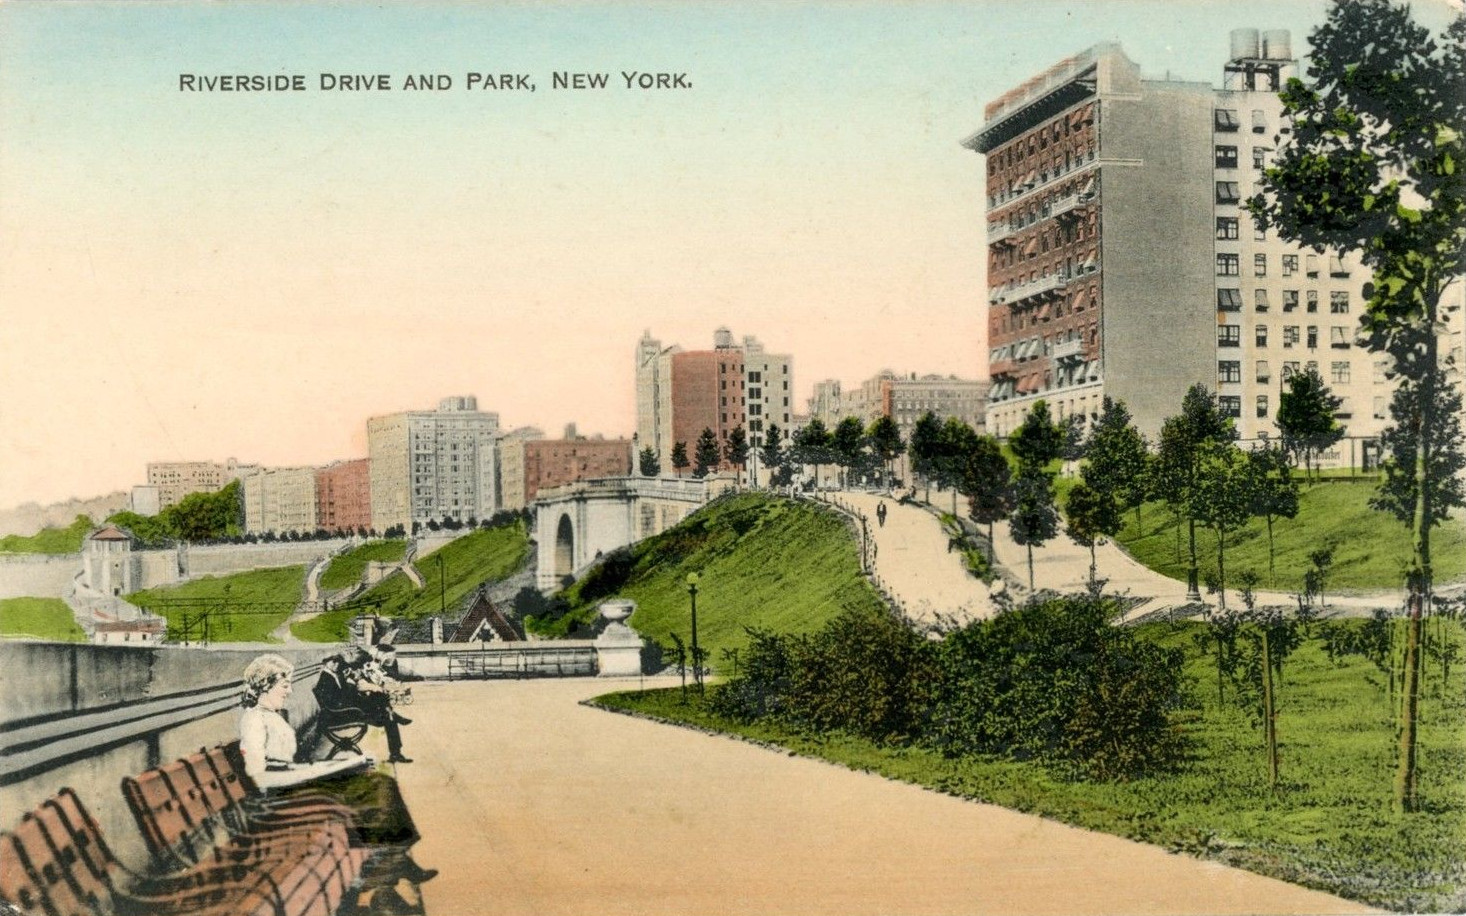 Old New York In Postcards #17 - Riverside Drive